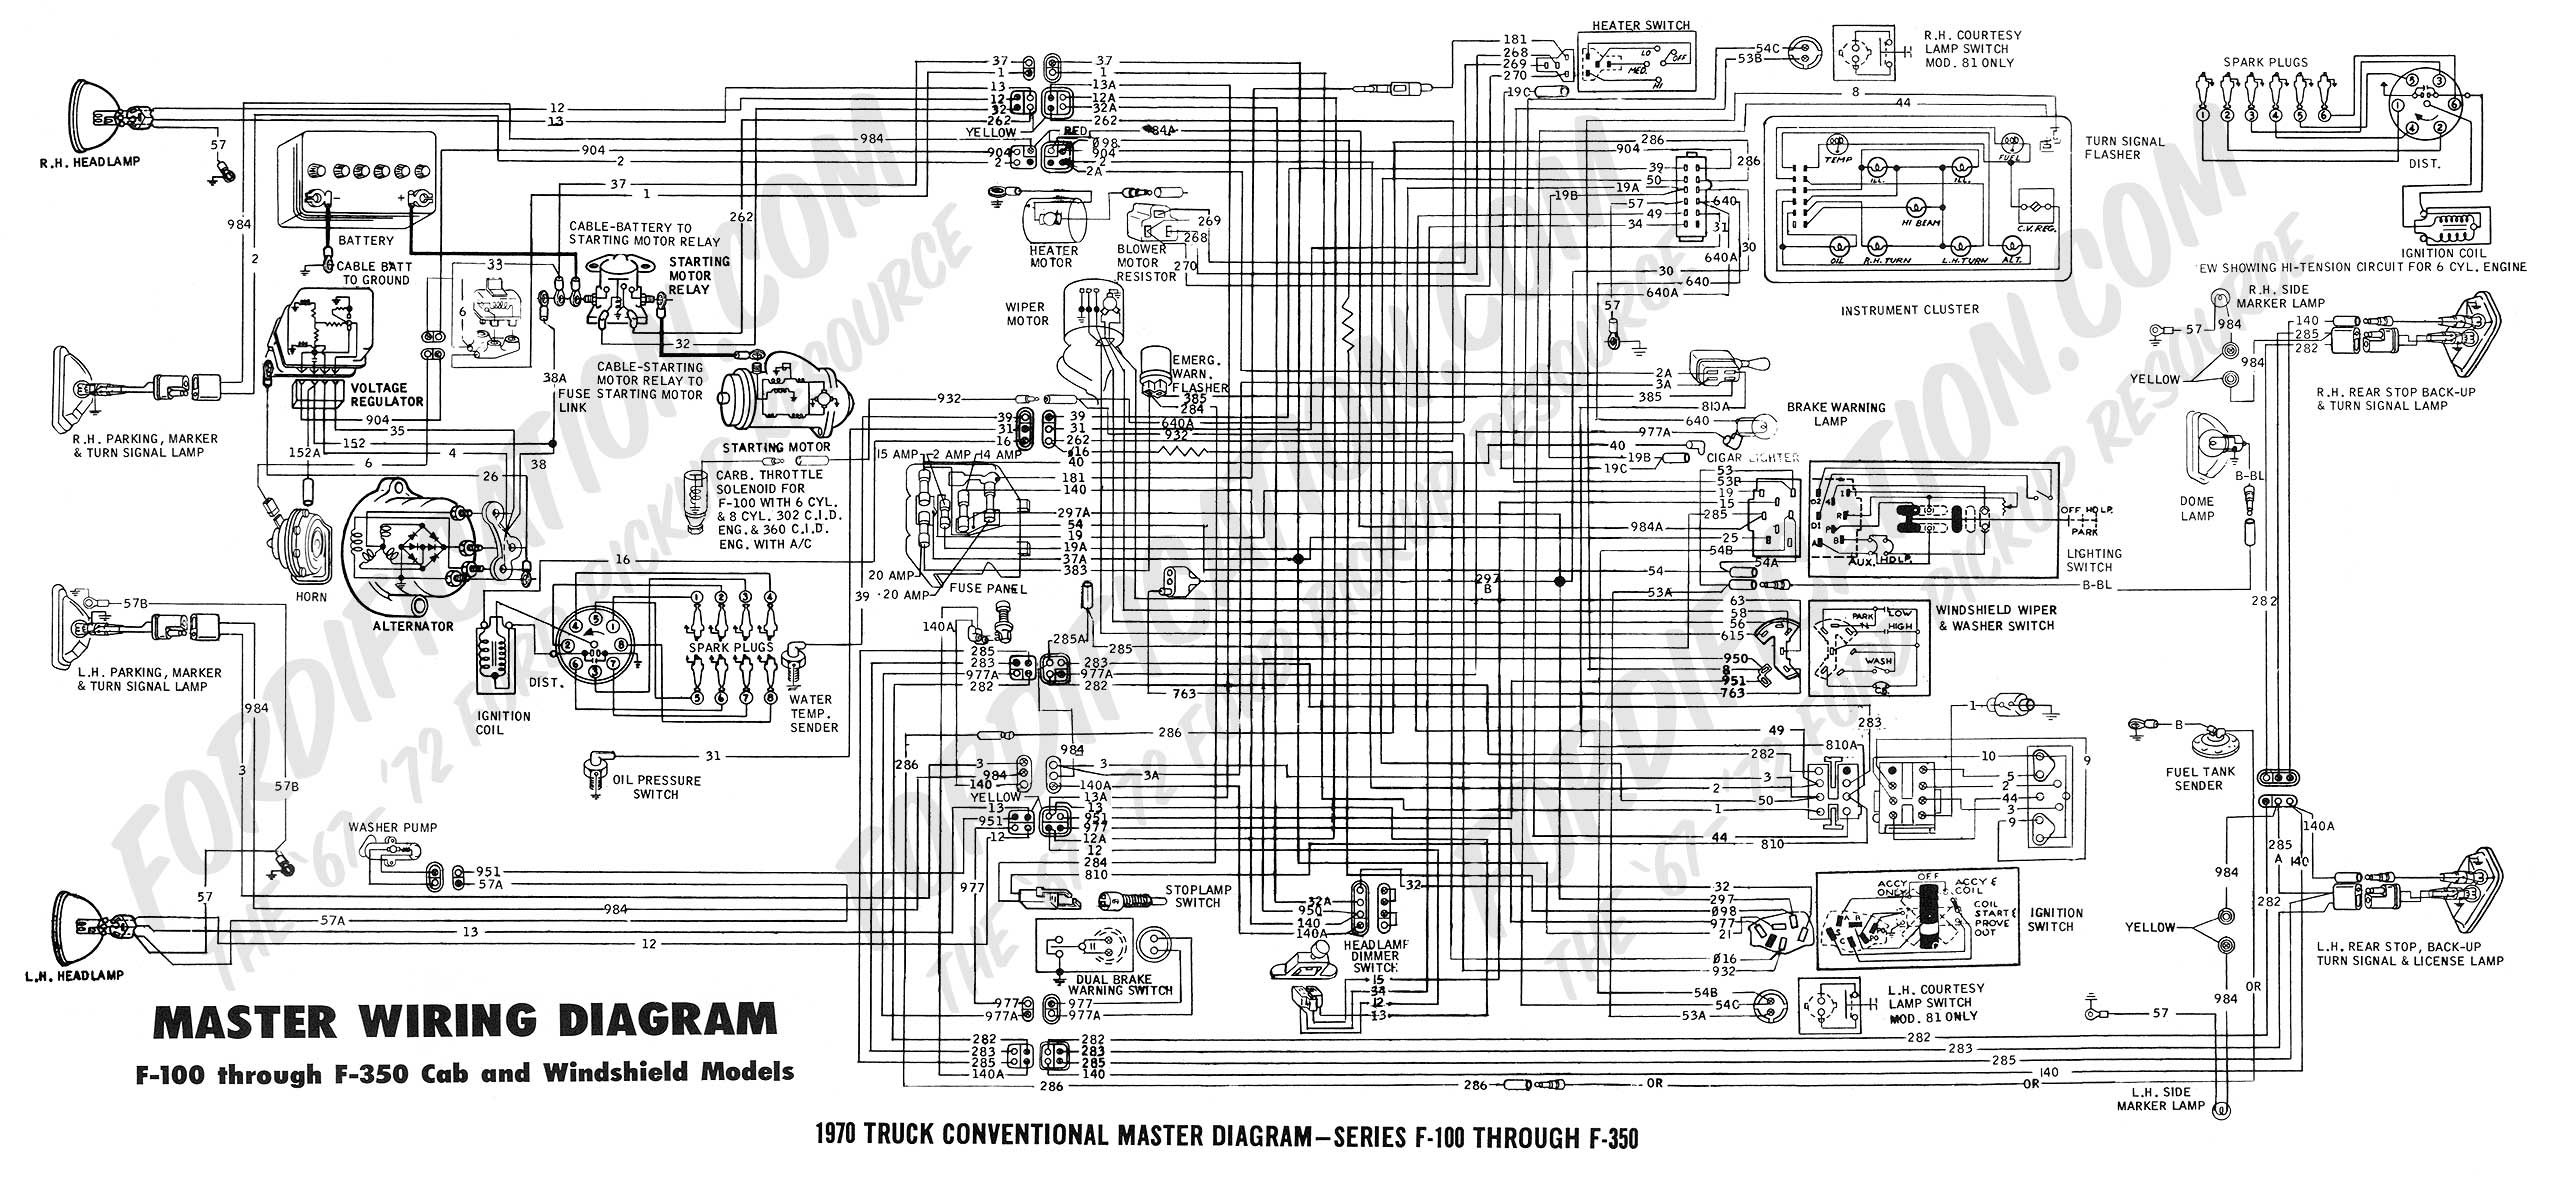 wiring diagram ford wiring diagram host ford wire diagram wiring diagrams wiring diagram ford ranchero 1978 ford wire diagram wiring diagram for